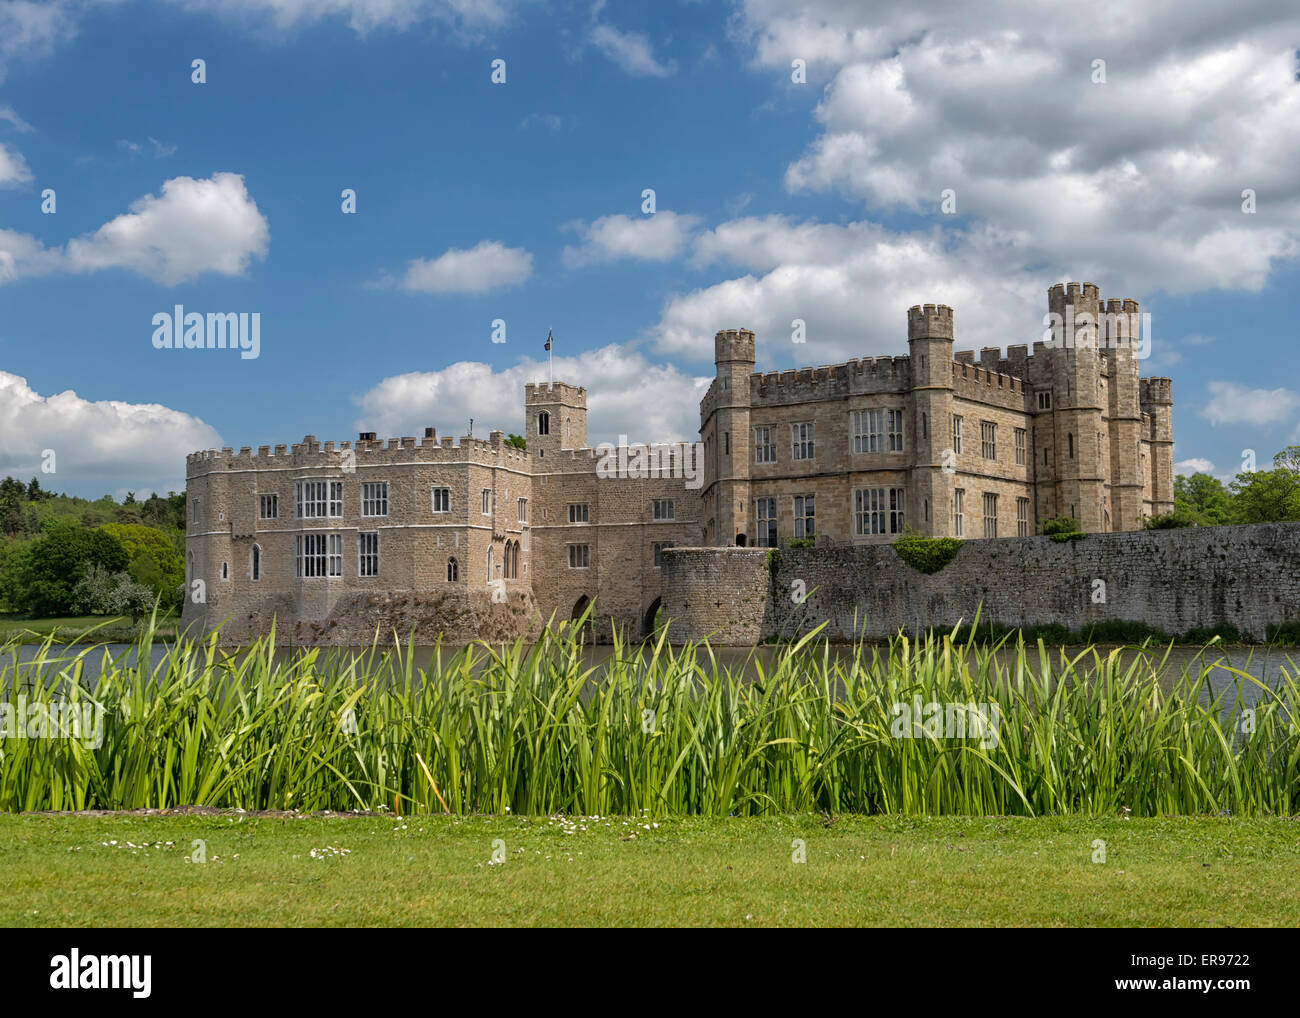 Leeds Castle in Kent, England UK - Stock Image